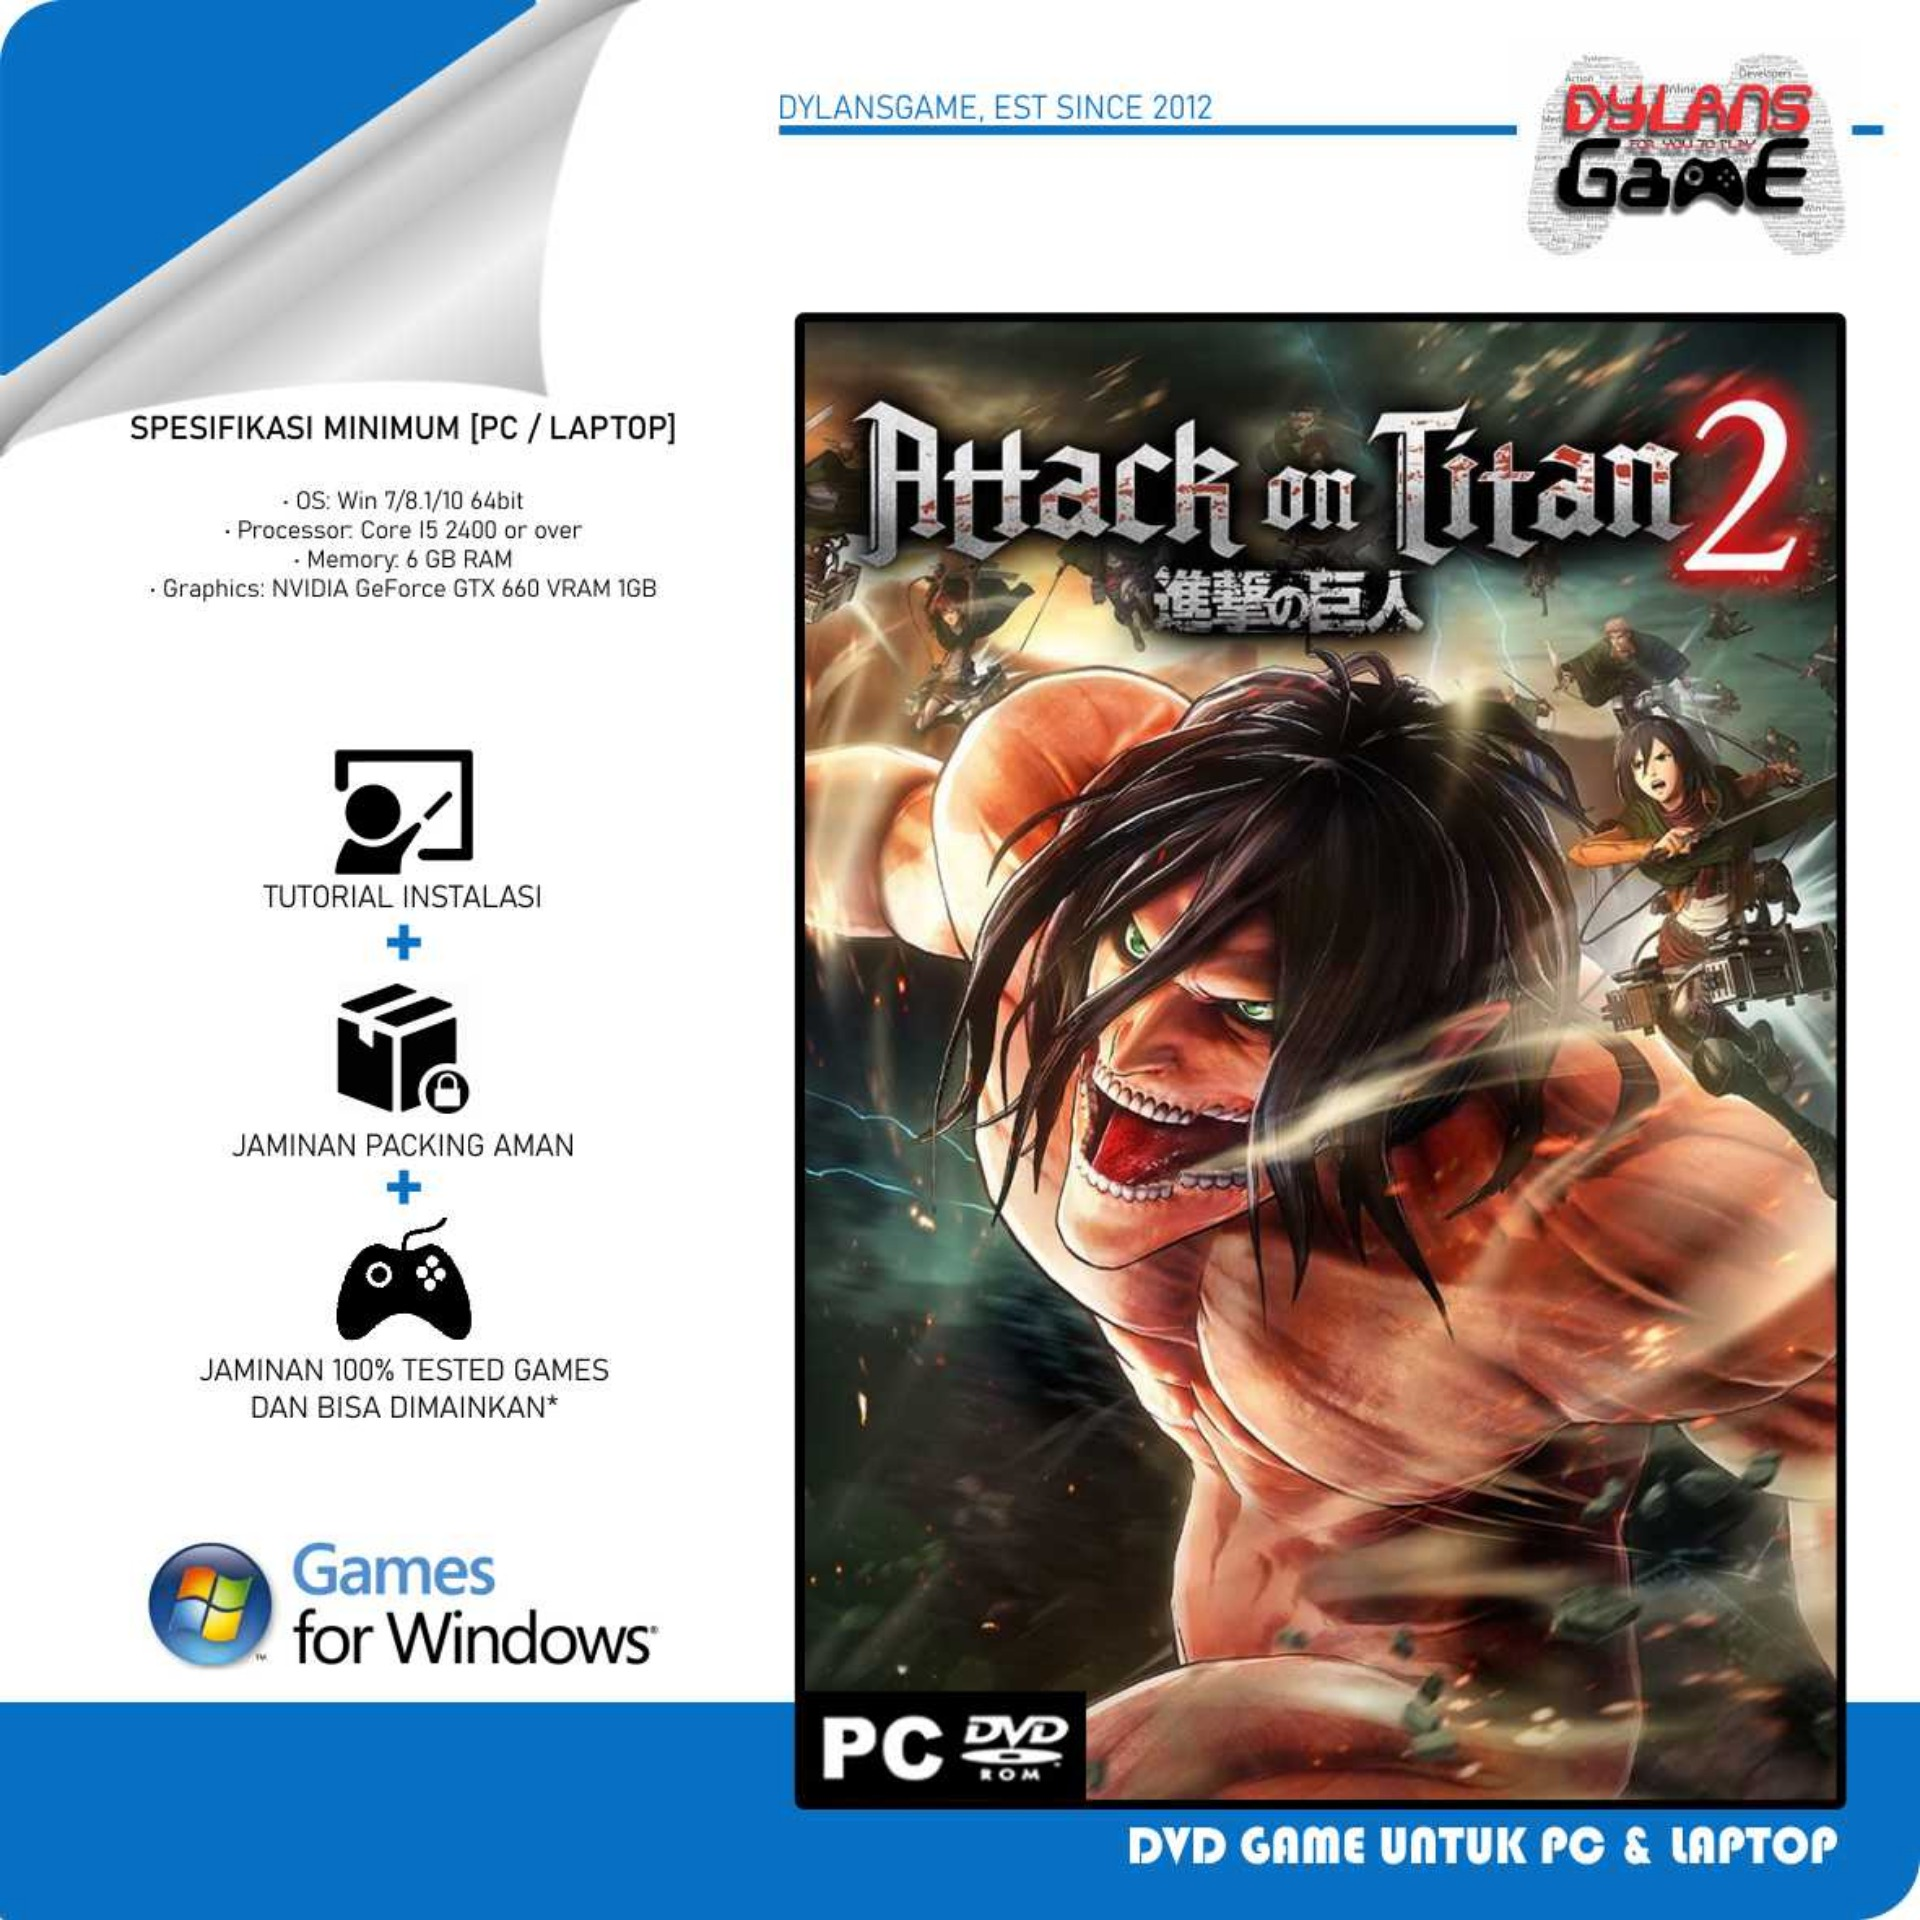 attack on titan 2 final battle pc game dvd game pc laptop